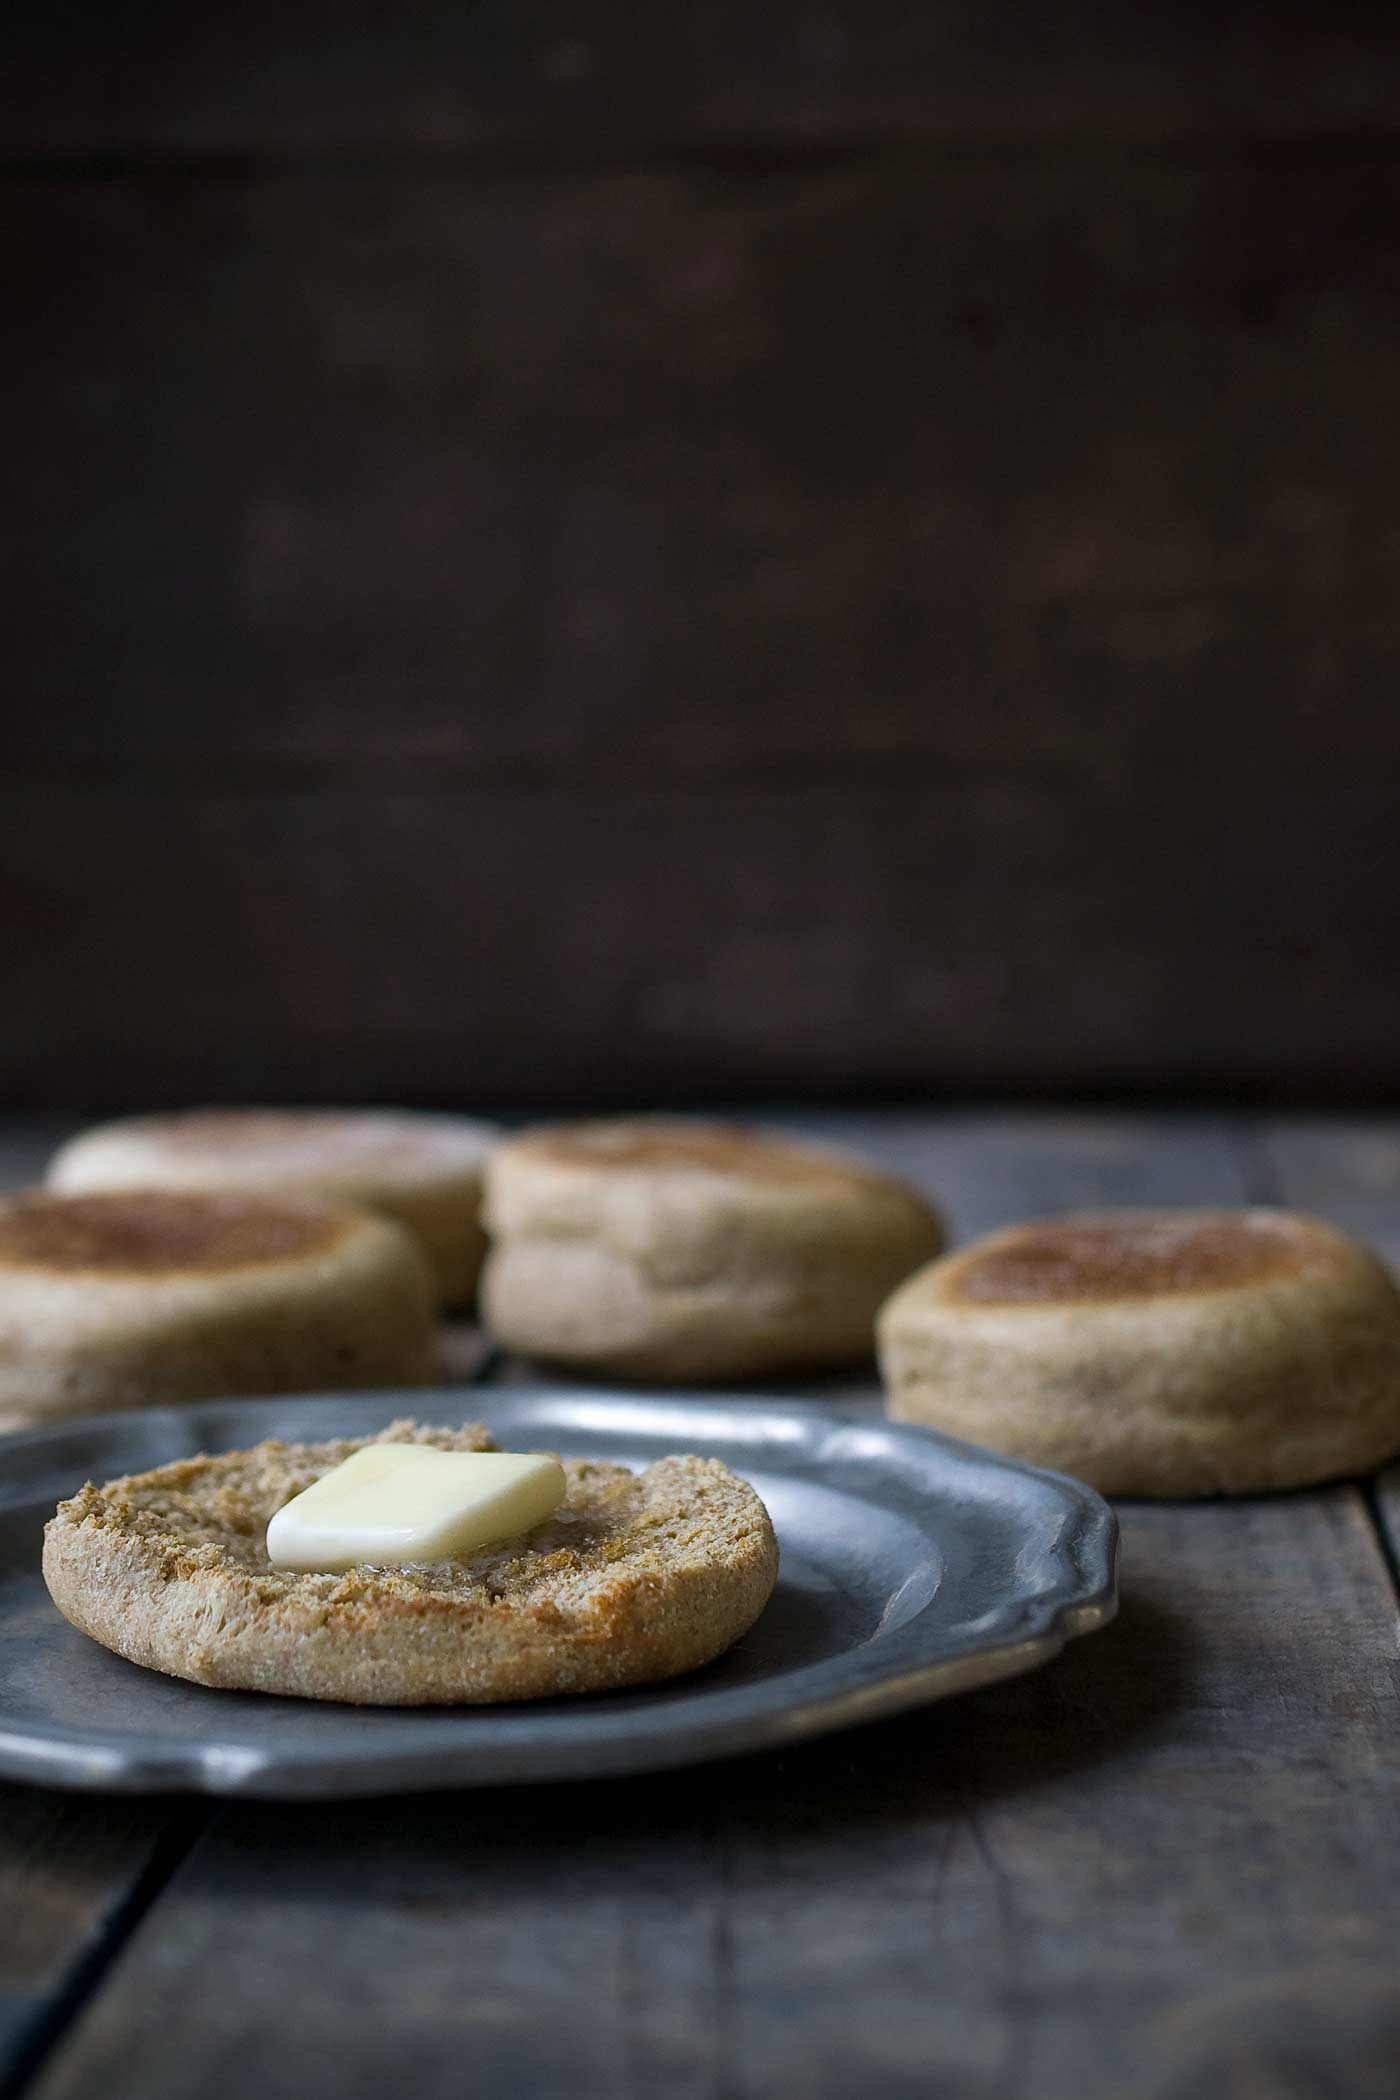 Wondering how to make english muffins? These homemade whole wheat english muffins have so much more flavor than store versions. They also have an incredibly satisfying, crunchy exterior.